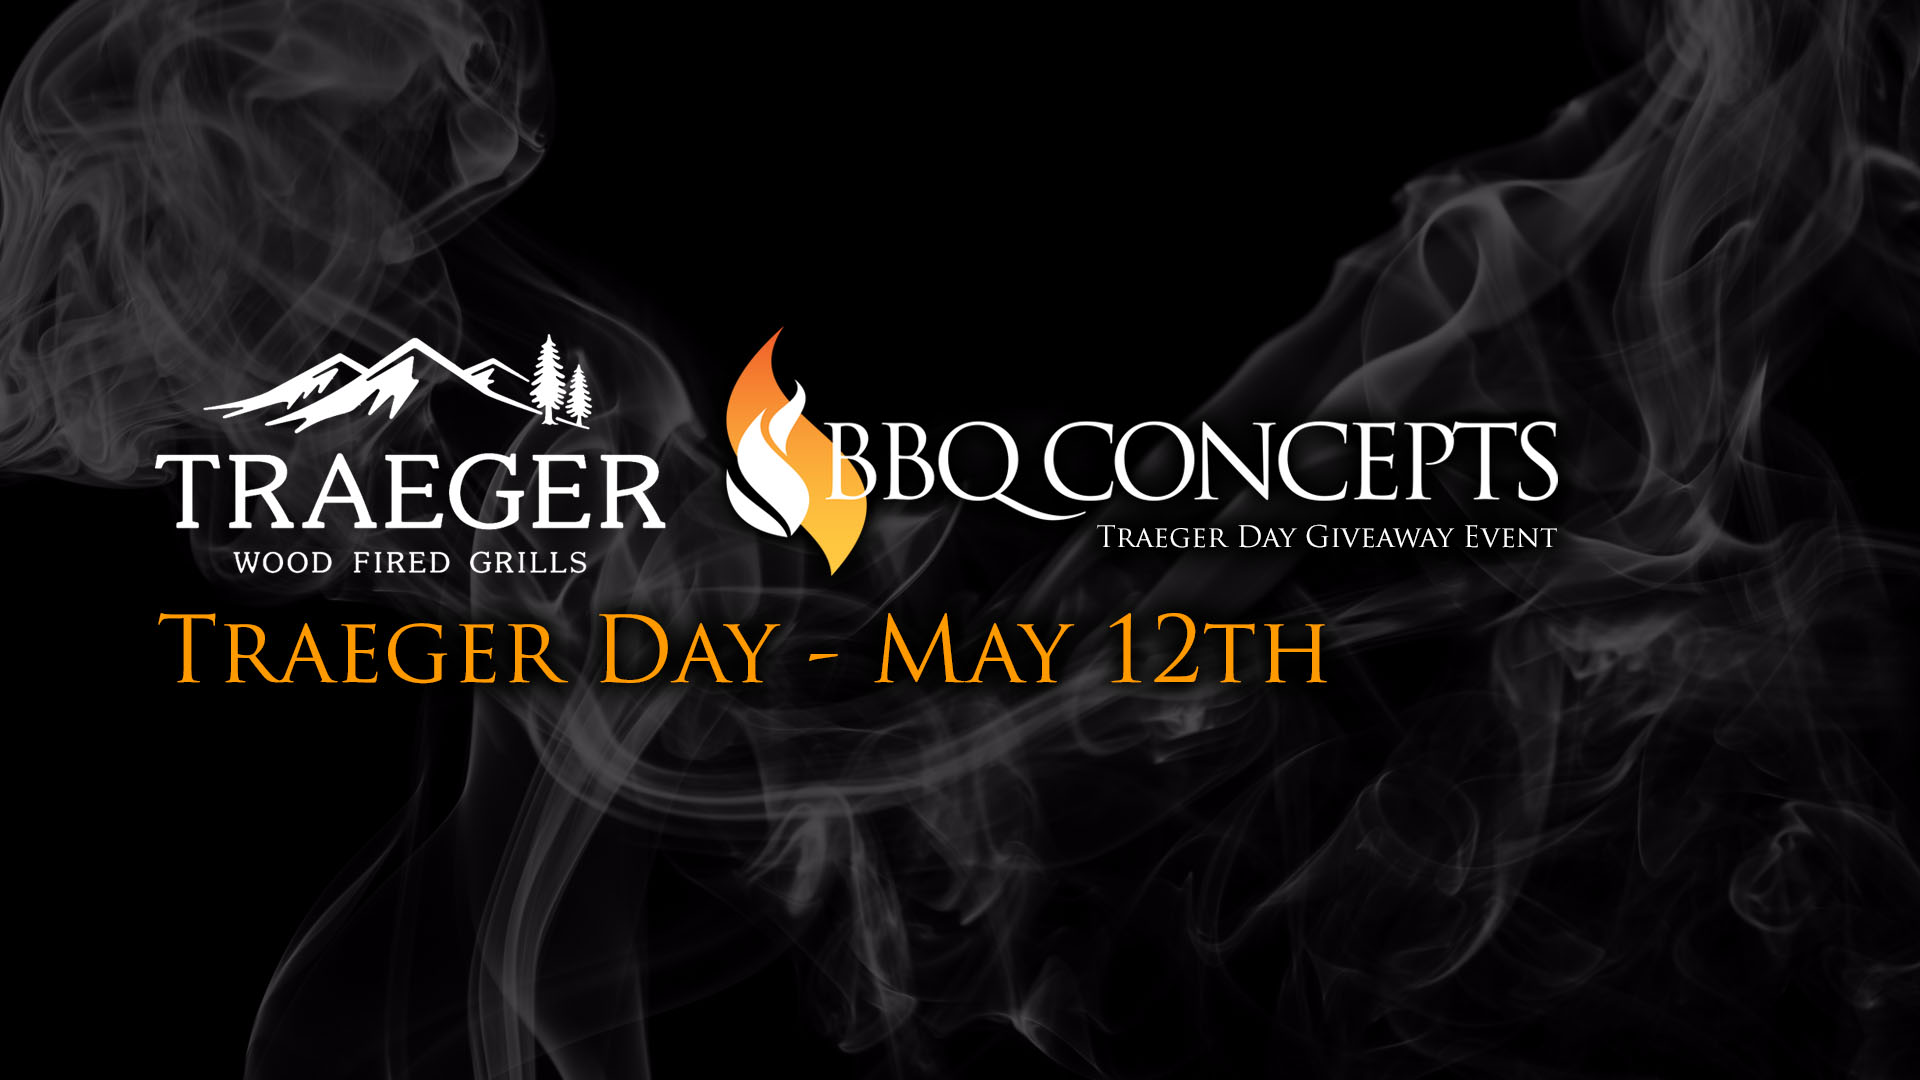 Traeger Day at BBQ Concepts of Las Vegas, Nevada - Saturday, May 12th 2018